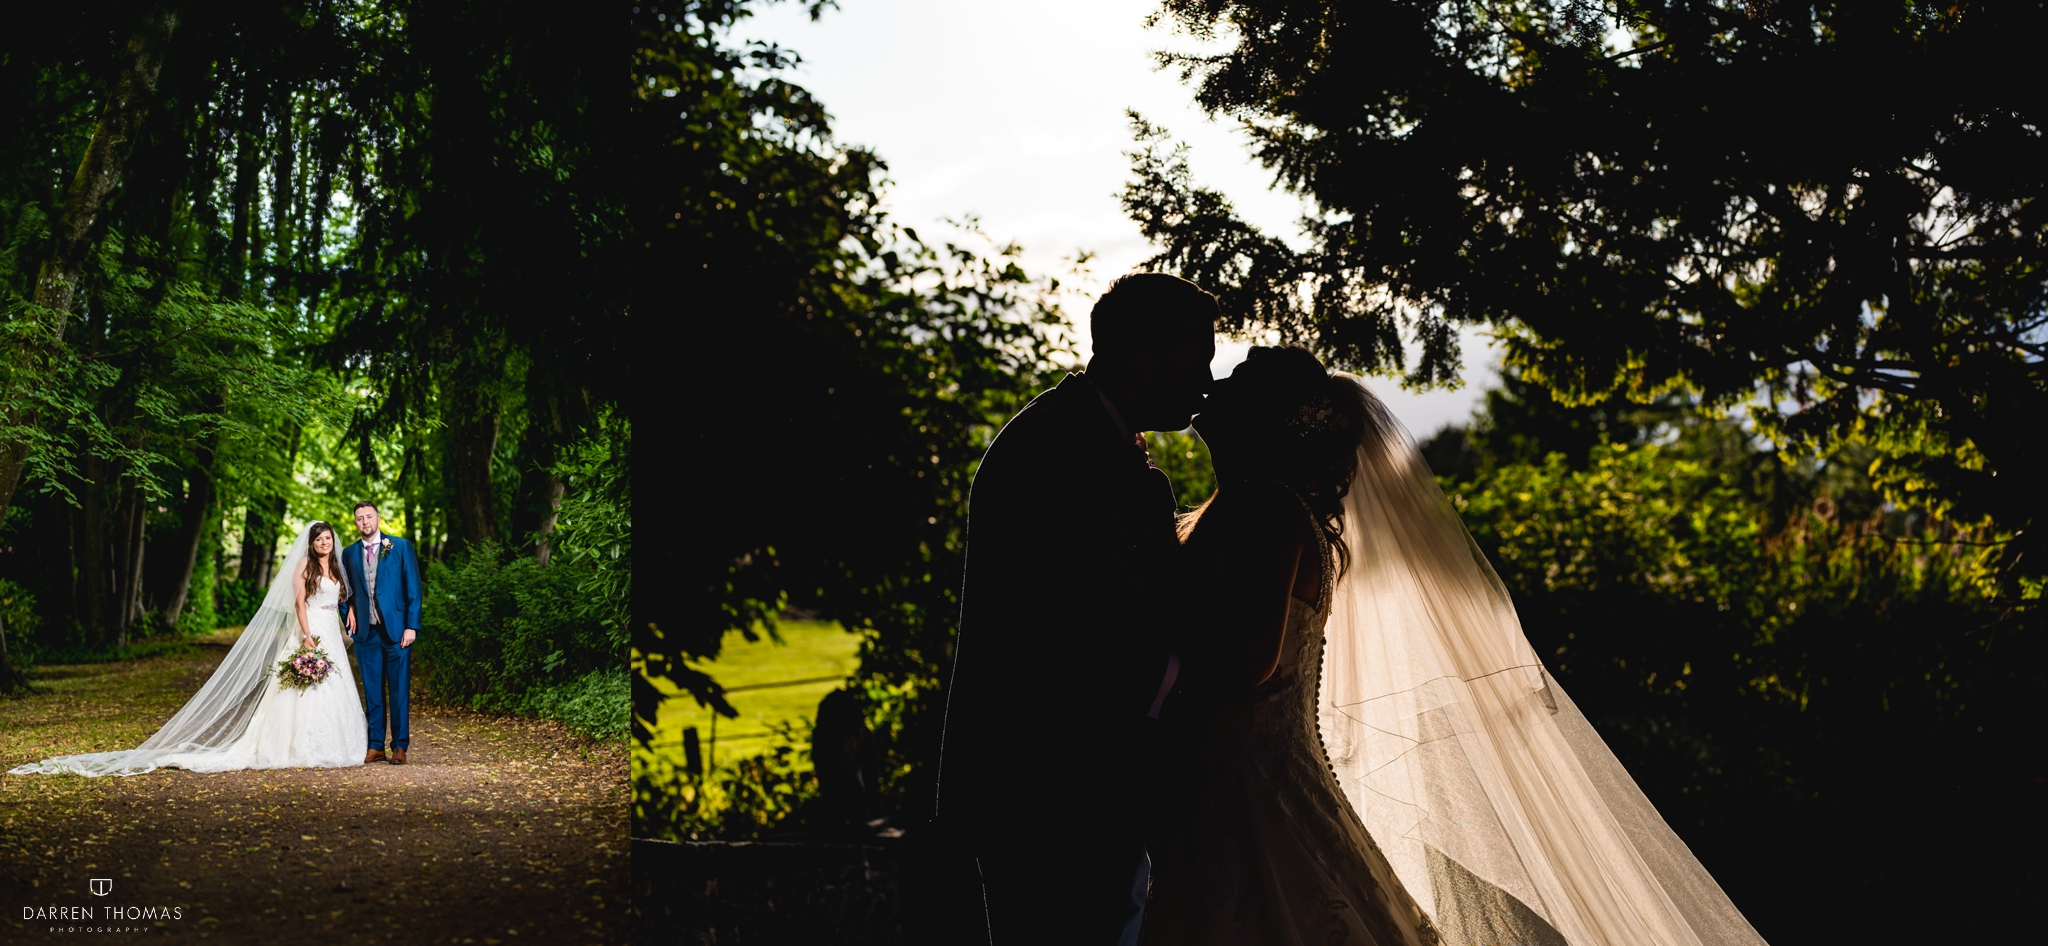 Clearwell-Castle-Wedding-Photographer-wedding-photography-south-wales